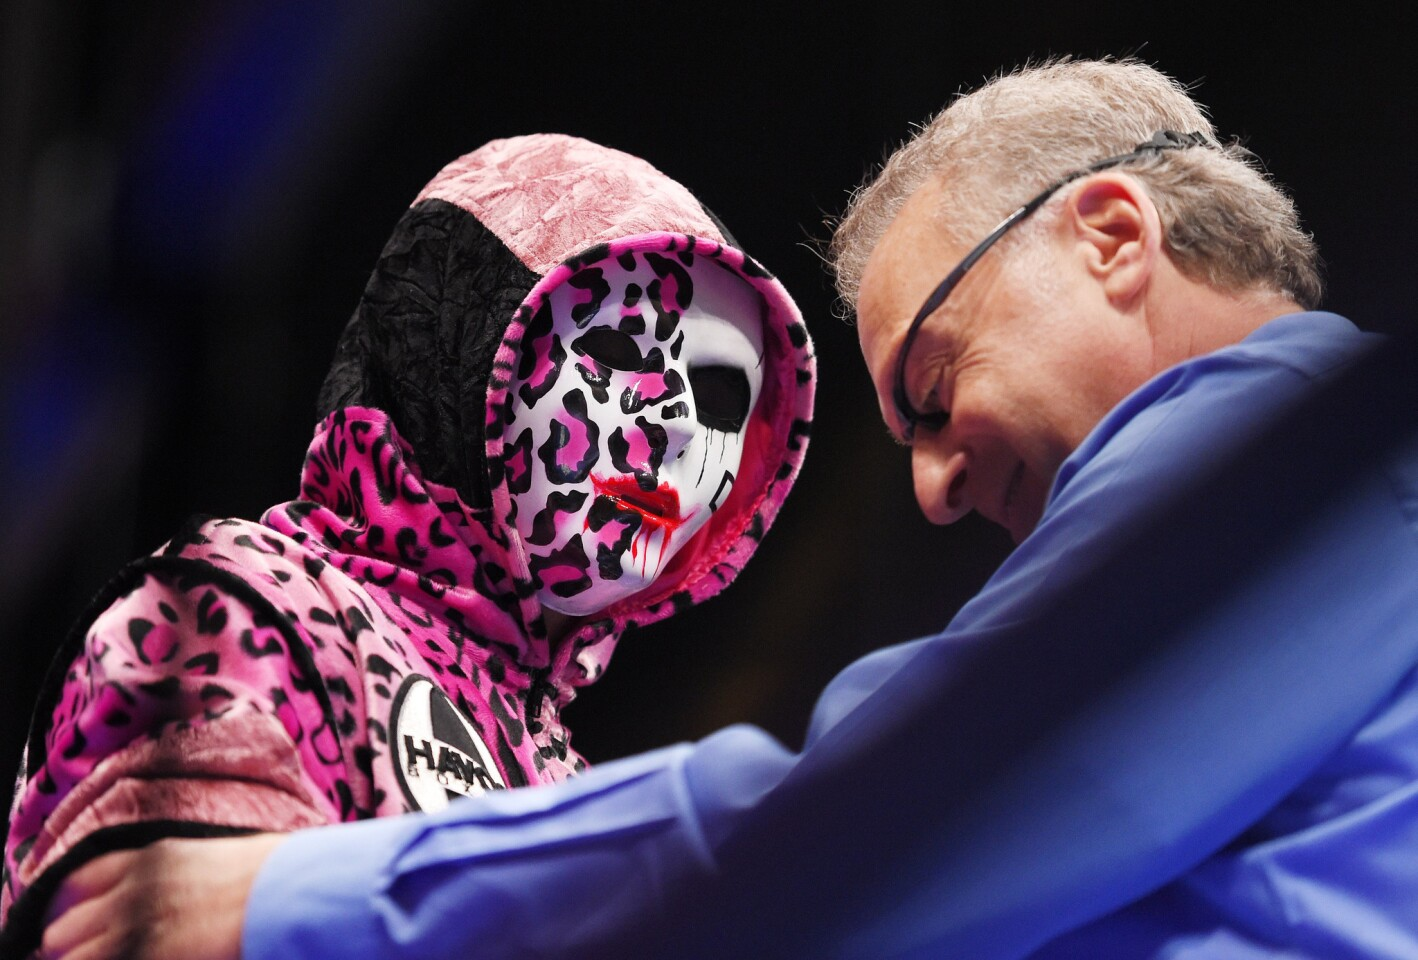 Referee Jack Reiss, right, talks with a mask-wearing Danny Garcia before his WBC welterweight title fight against Robert Guerrero.